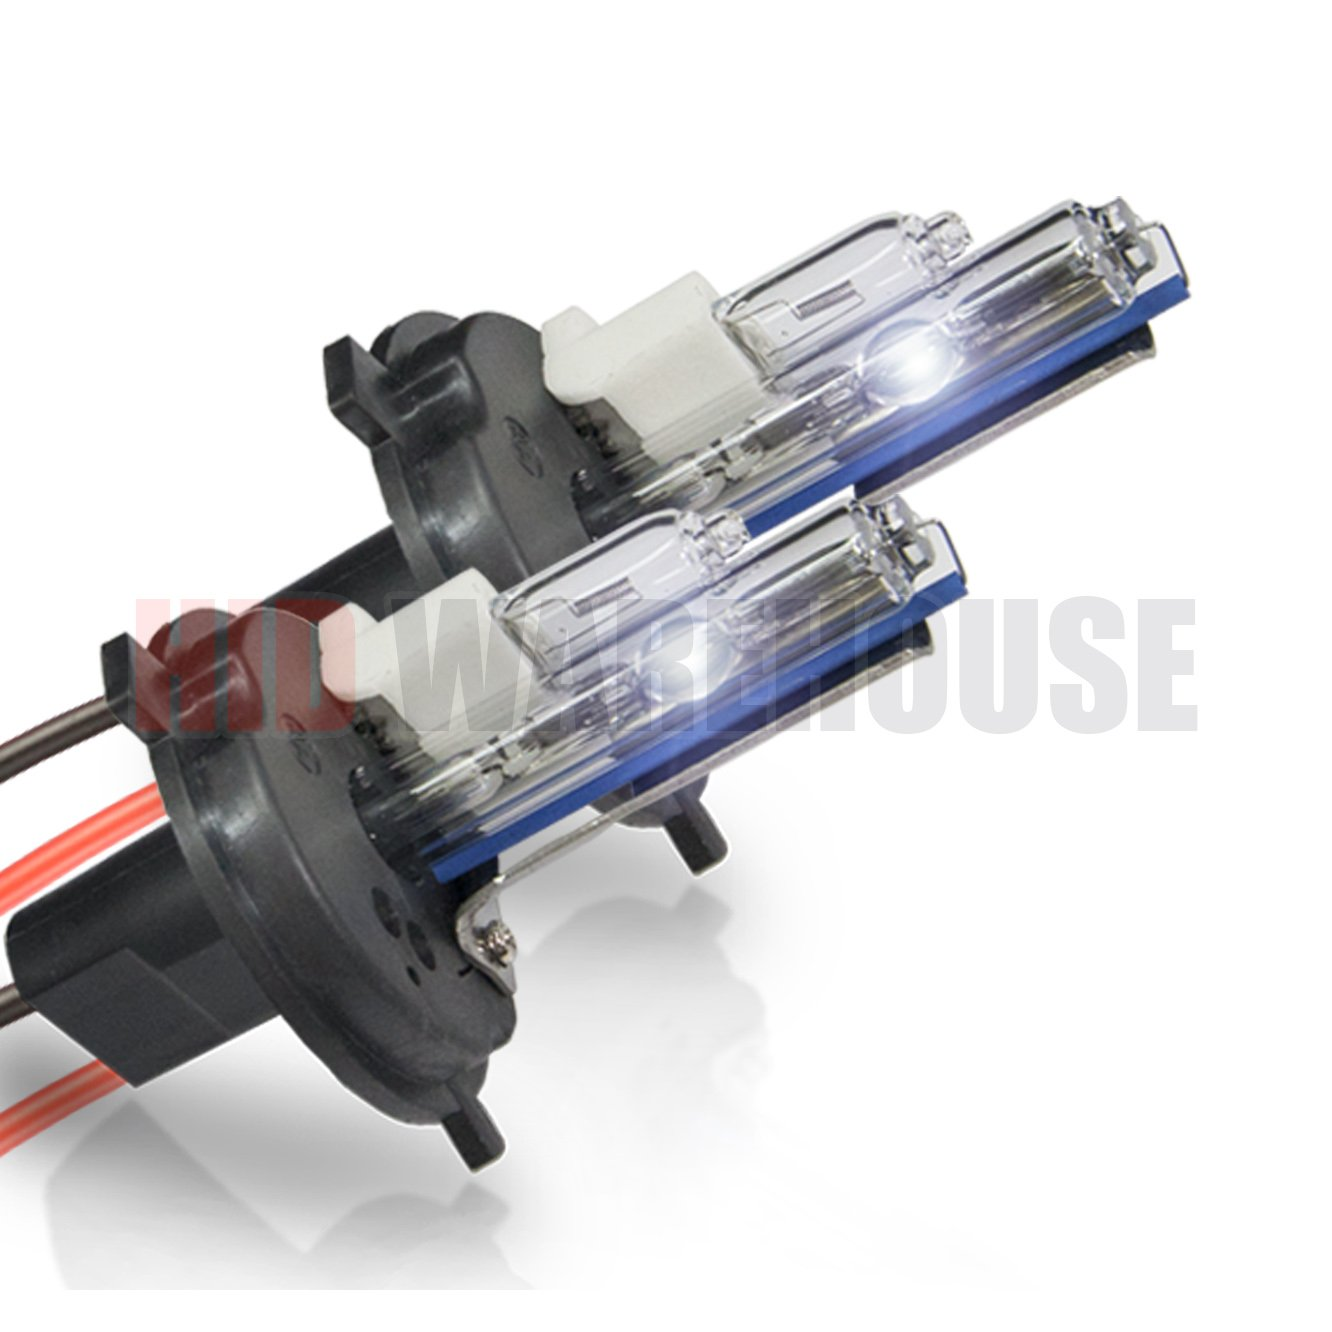 HID-Warehouse HID Xenon Replacement Bulbs - H4 / 9003 4300K - Bright Daylight (1 Pair) - 2 Year Warranty by HID-Warehouse